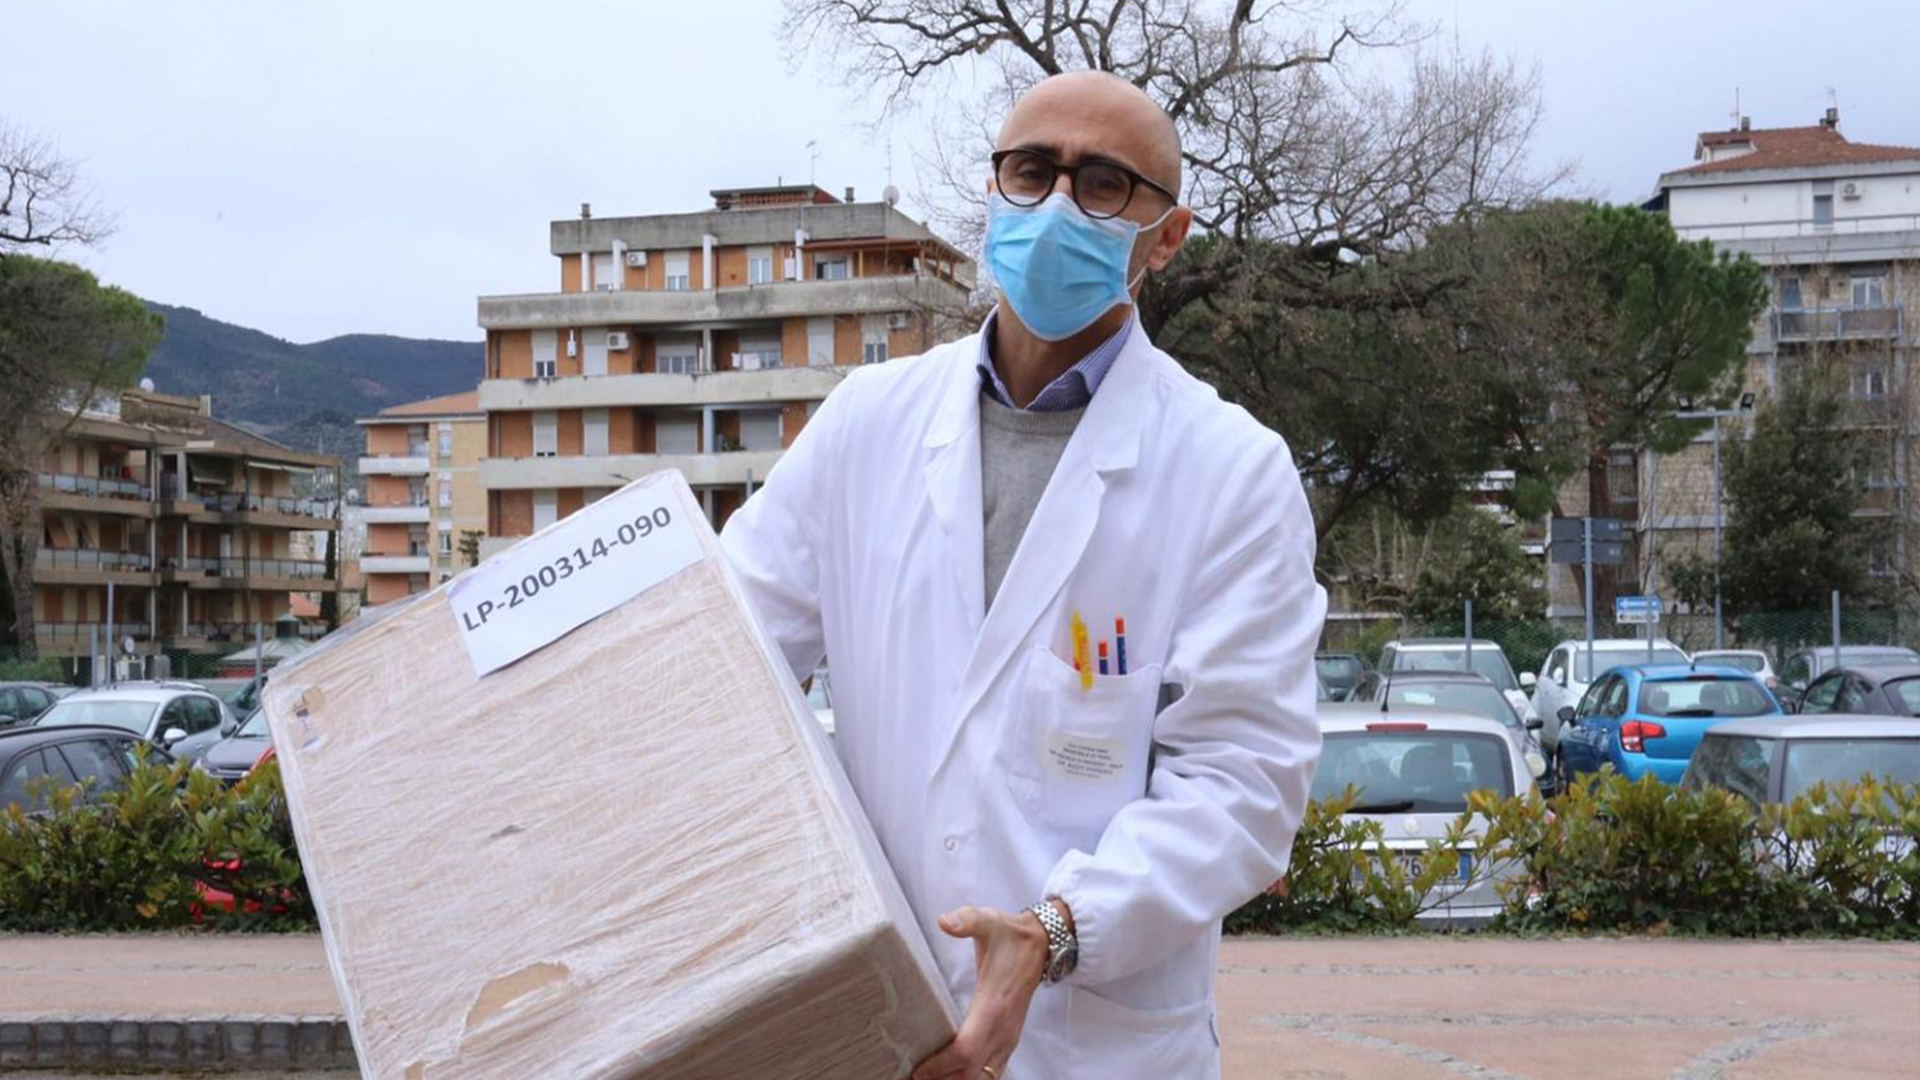 Donations like those of the Terni team are helping to contain the Corona pandemic.